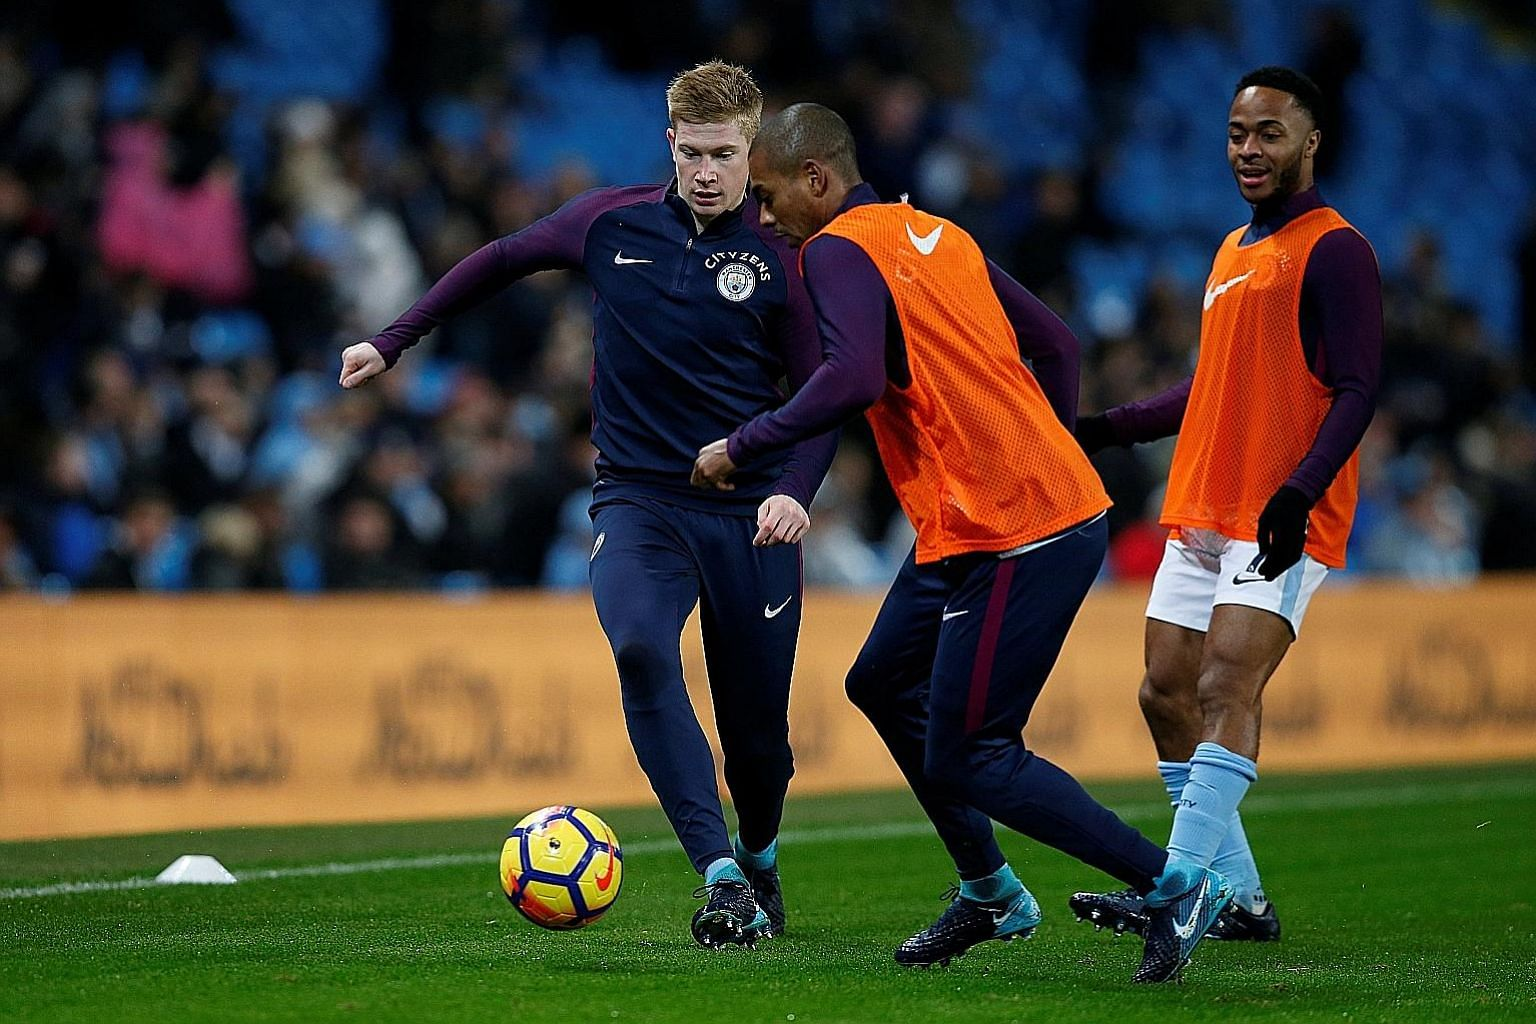 From left: Manchester City's Kevin de Bruyne, Fernandinho and Raheem Sterling warming up before the 3-1 win over Watford on Tuesday. Manager Pep Guardiola has insisted he will not take the visit of Burnley lightly and all three stars are expected to